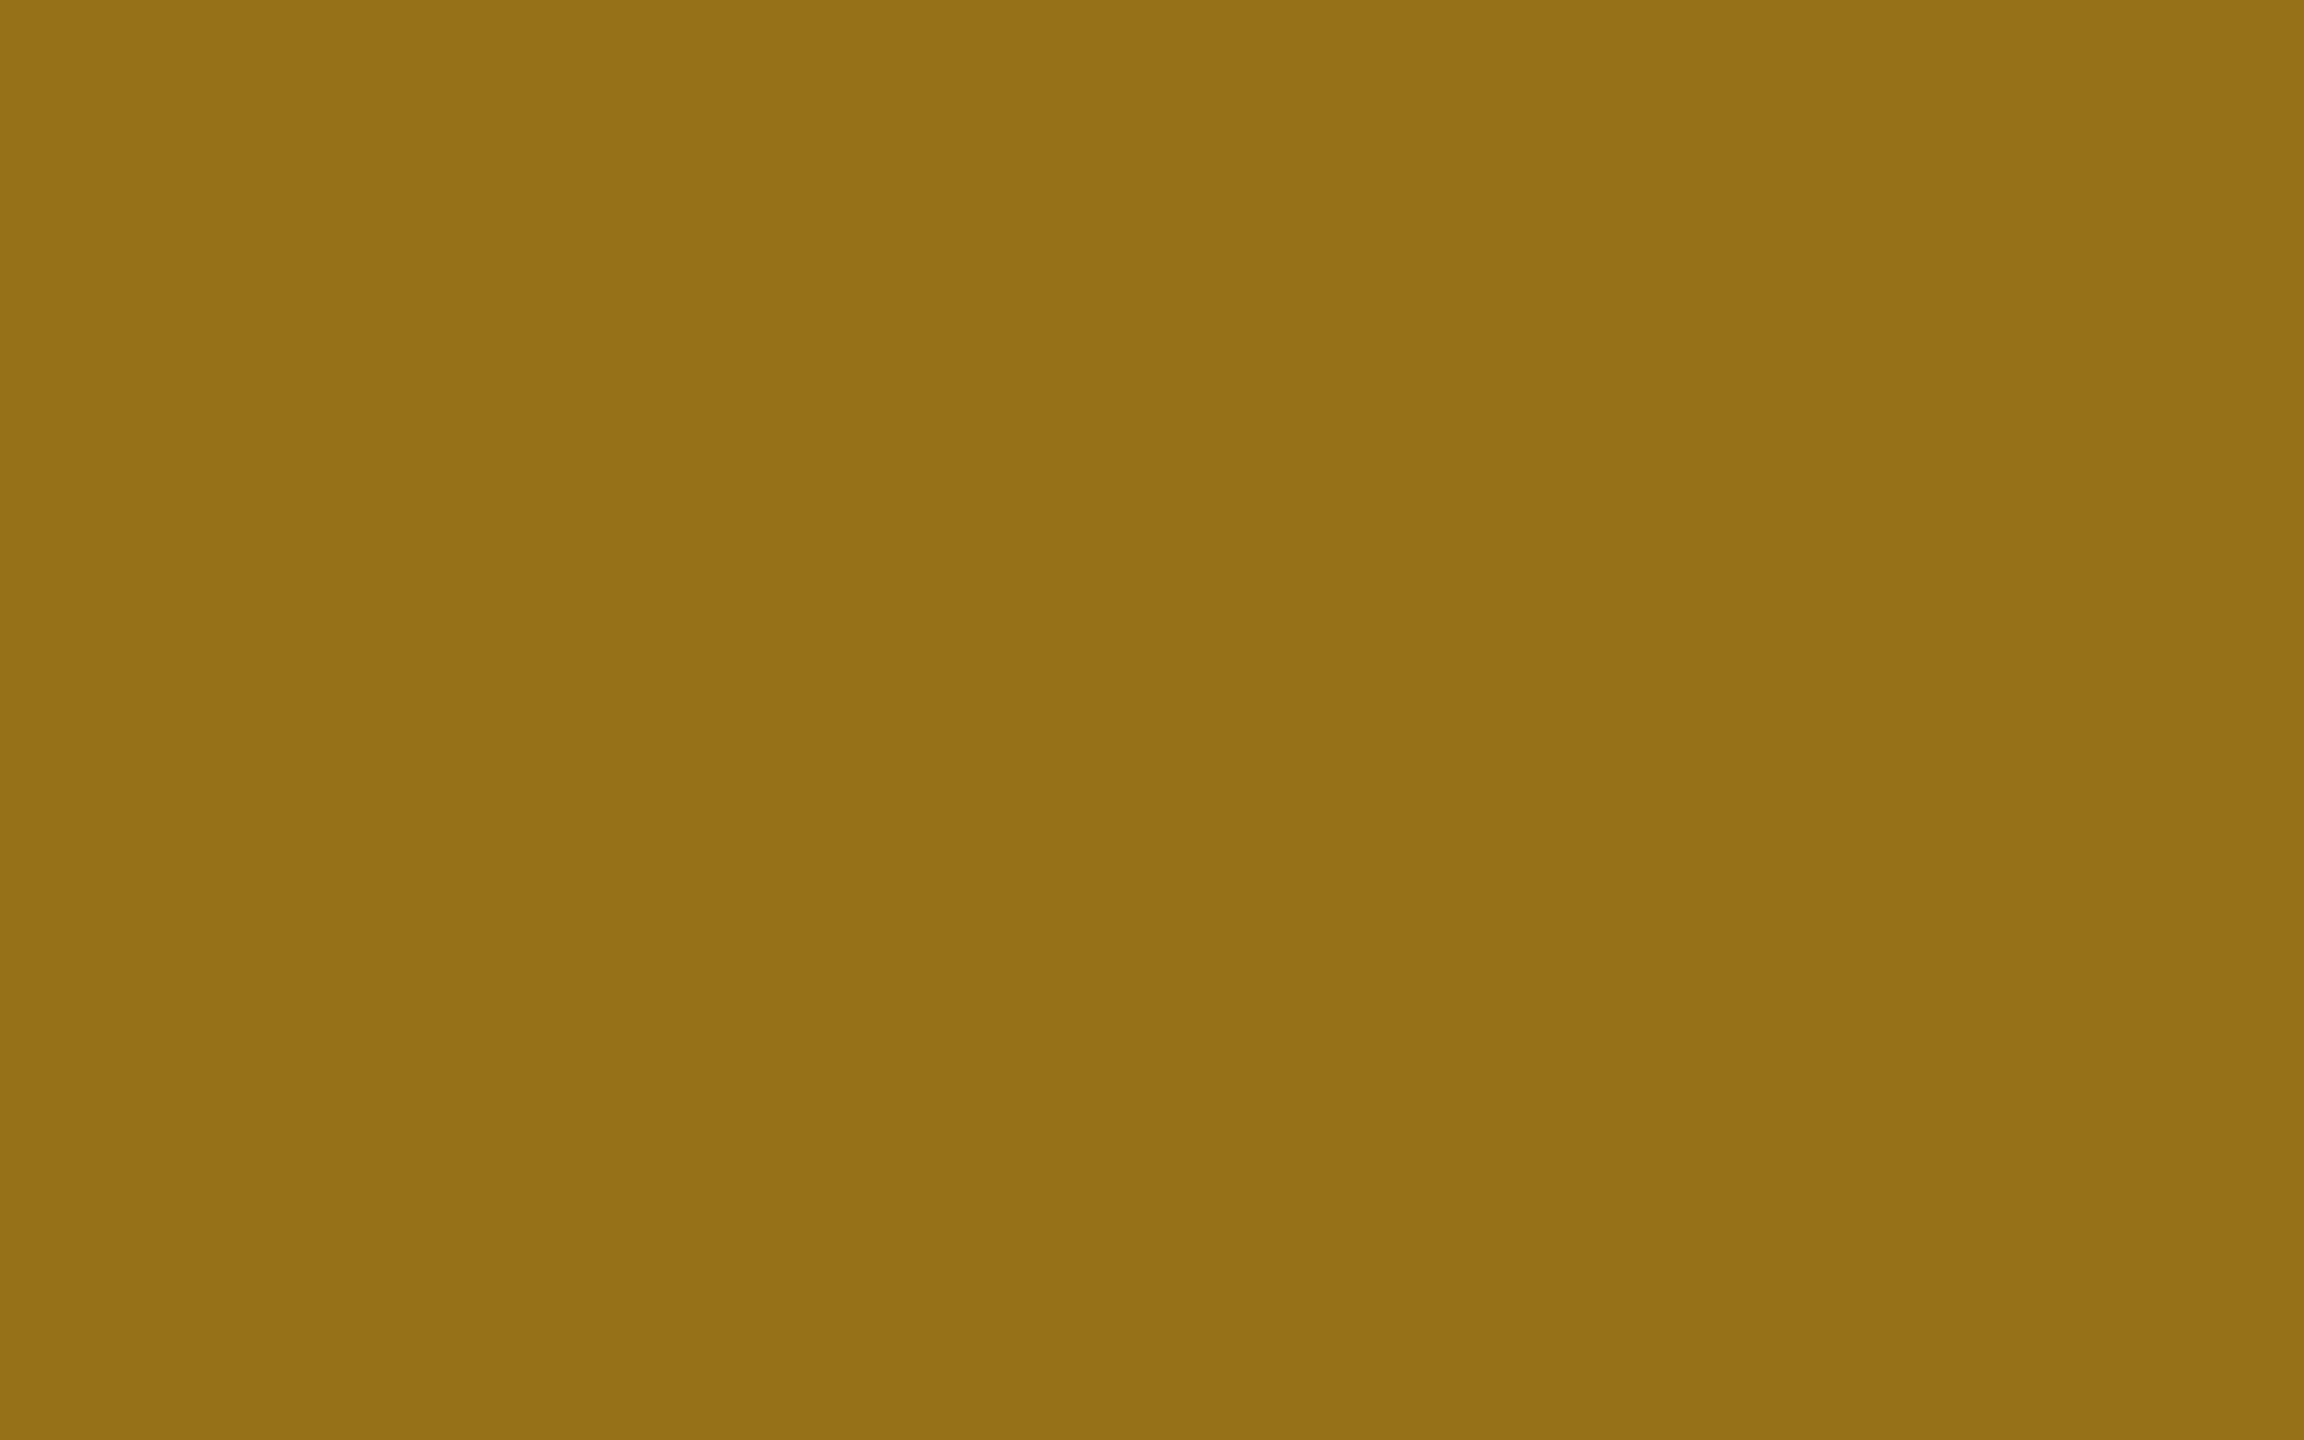 2304x1440 Sand Dune Solid Color Background